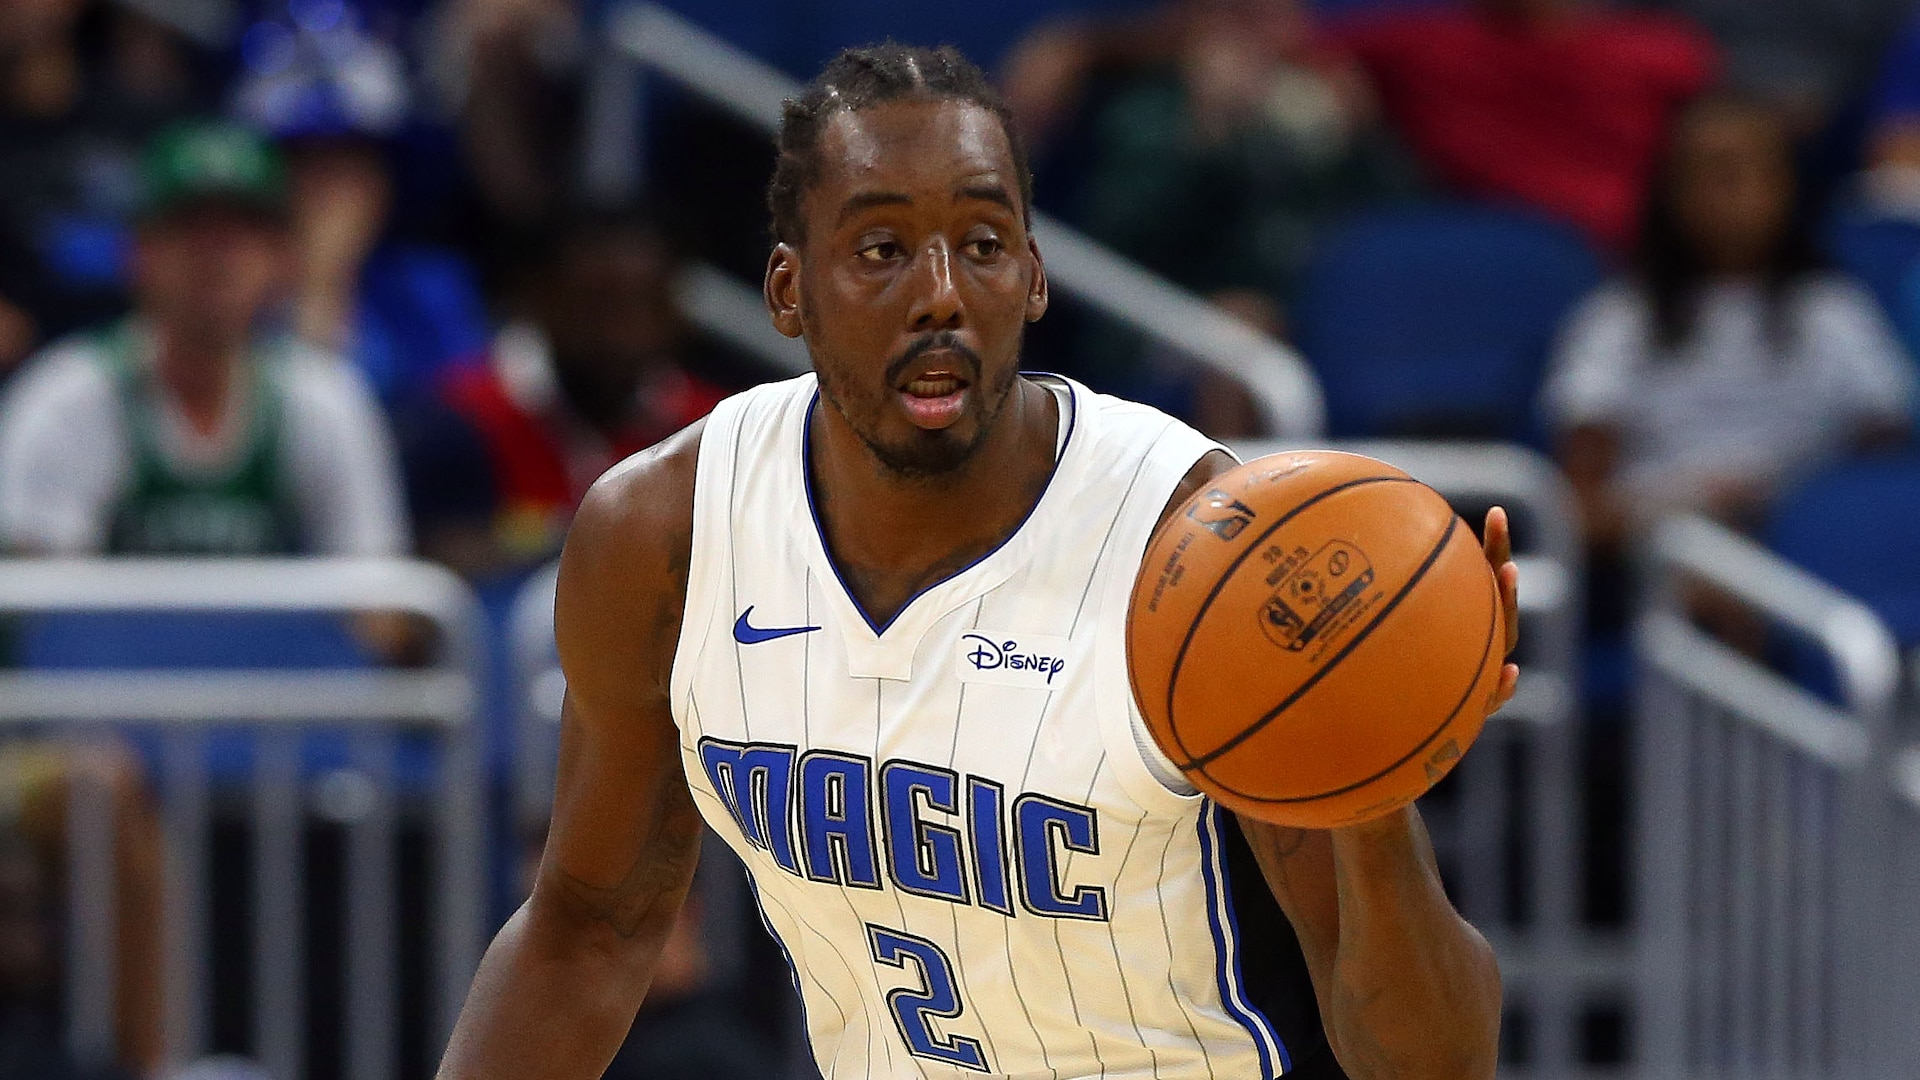 Al-Farouq Aminu out indefinitely after knee surgery